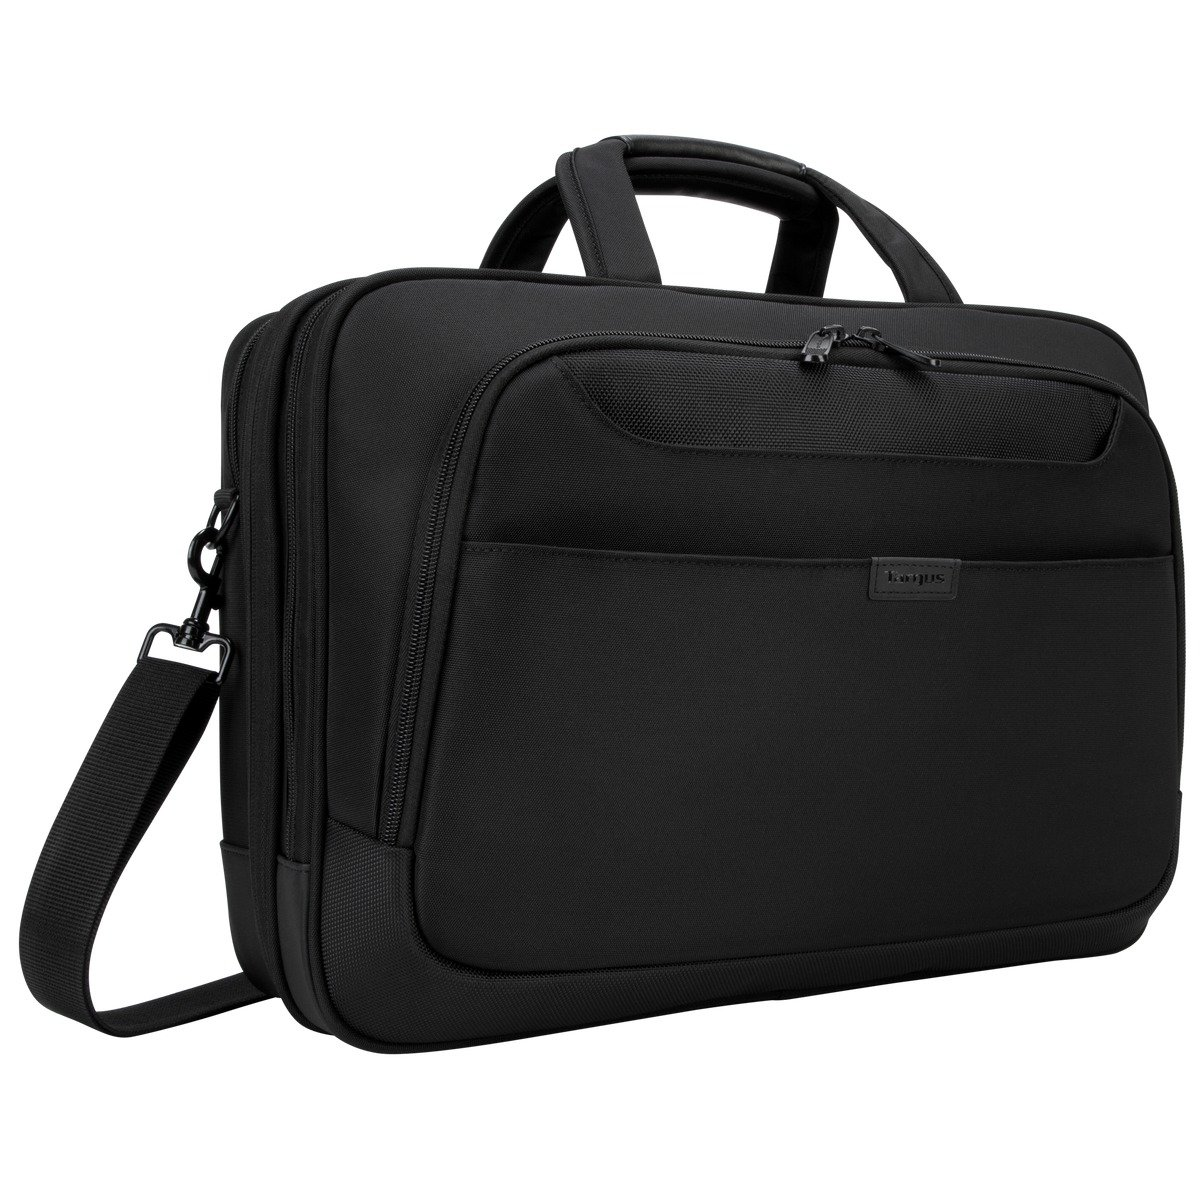 Targus Blacktop Deluxe Checkpoint-Friendly Laptop Bag with DOME Protection for 17-Inch Laptops, Black (TBT275)